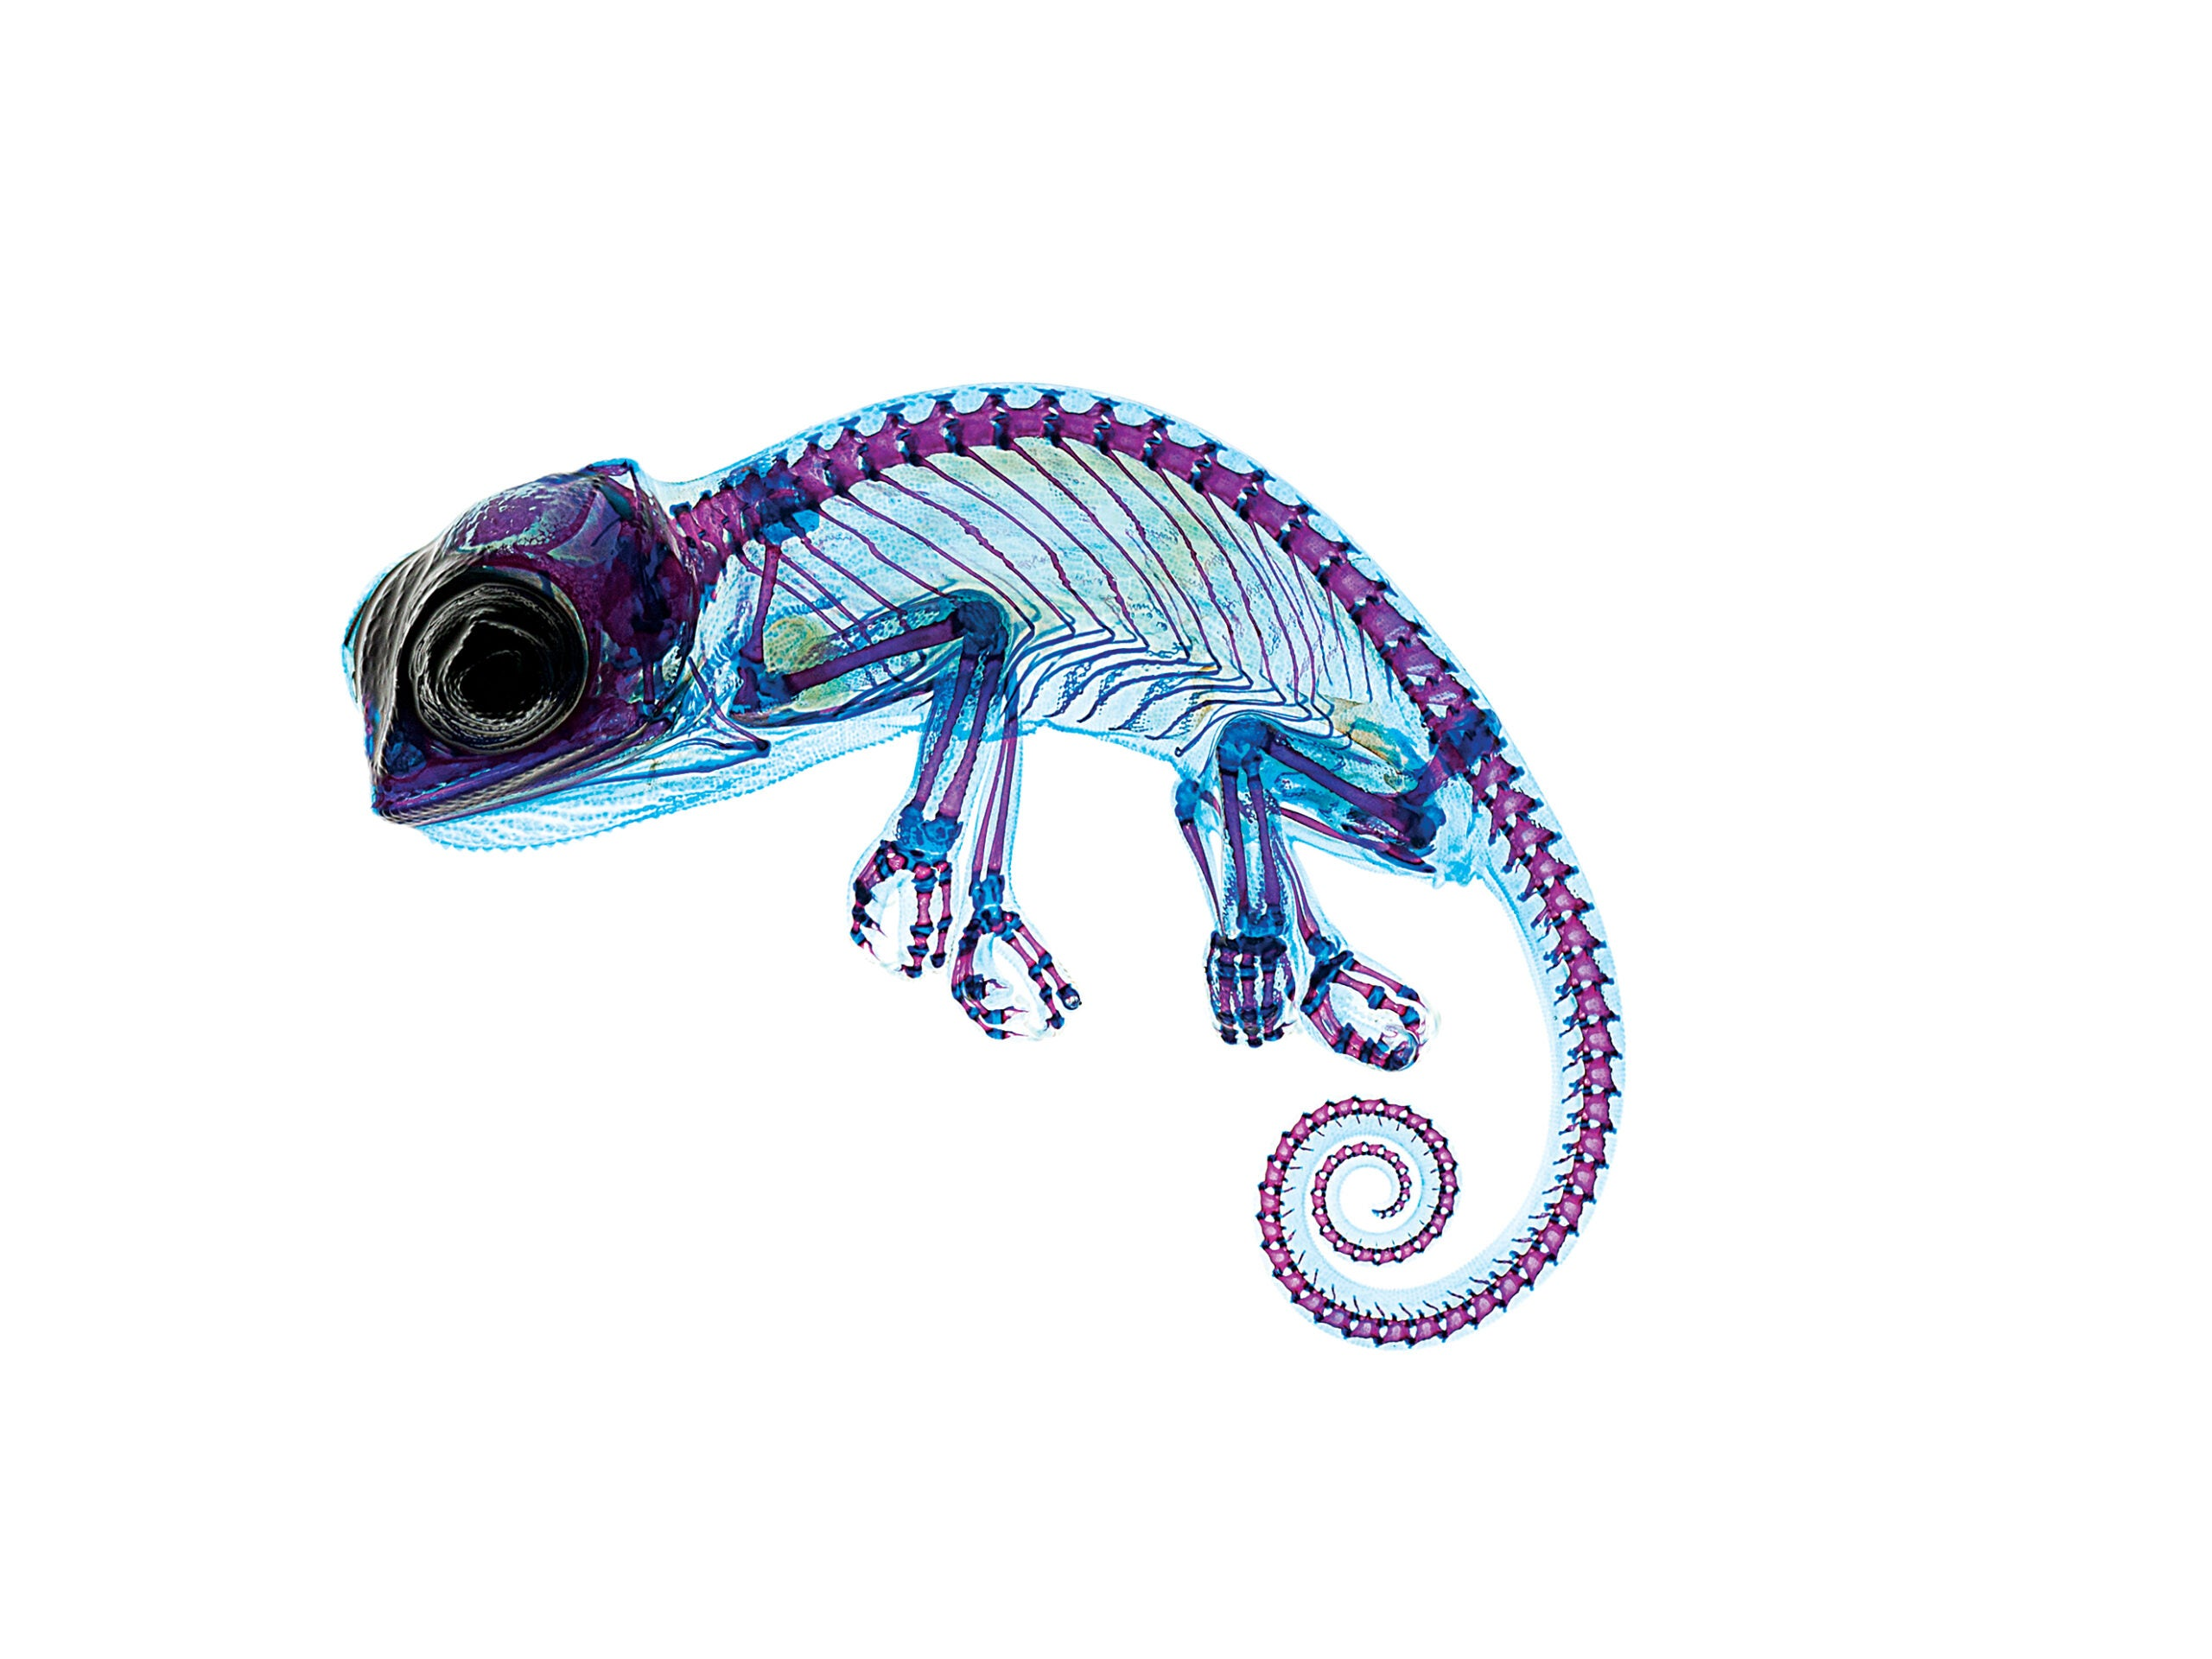 A Delicate Chameleon Displays Vivid Colors Under The Microscope